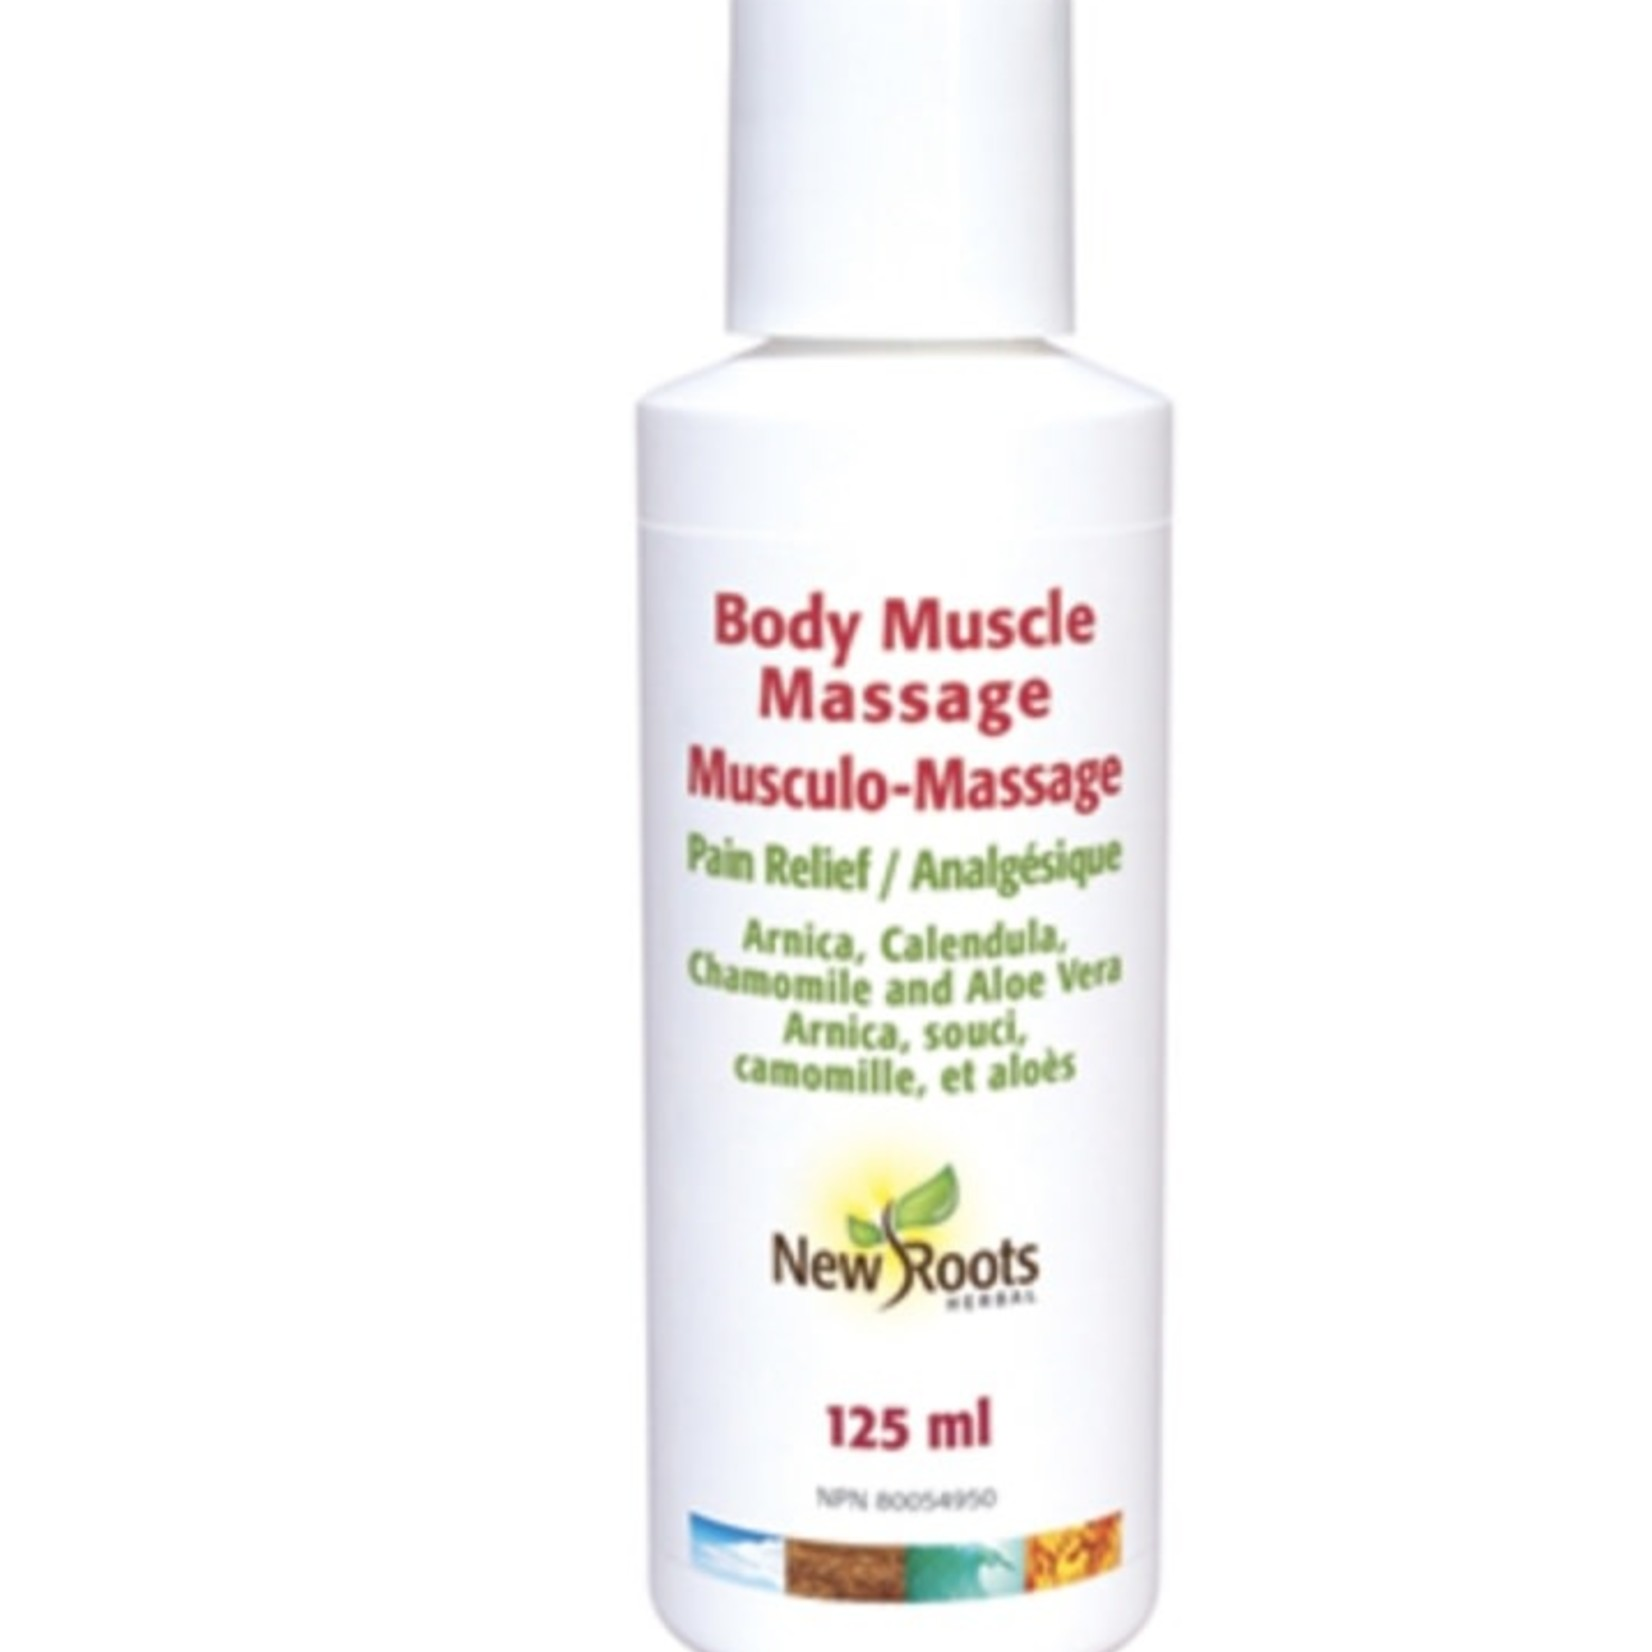 New Roots New Roots Body Muscle Massage 125ml